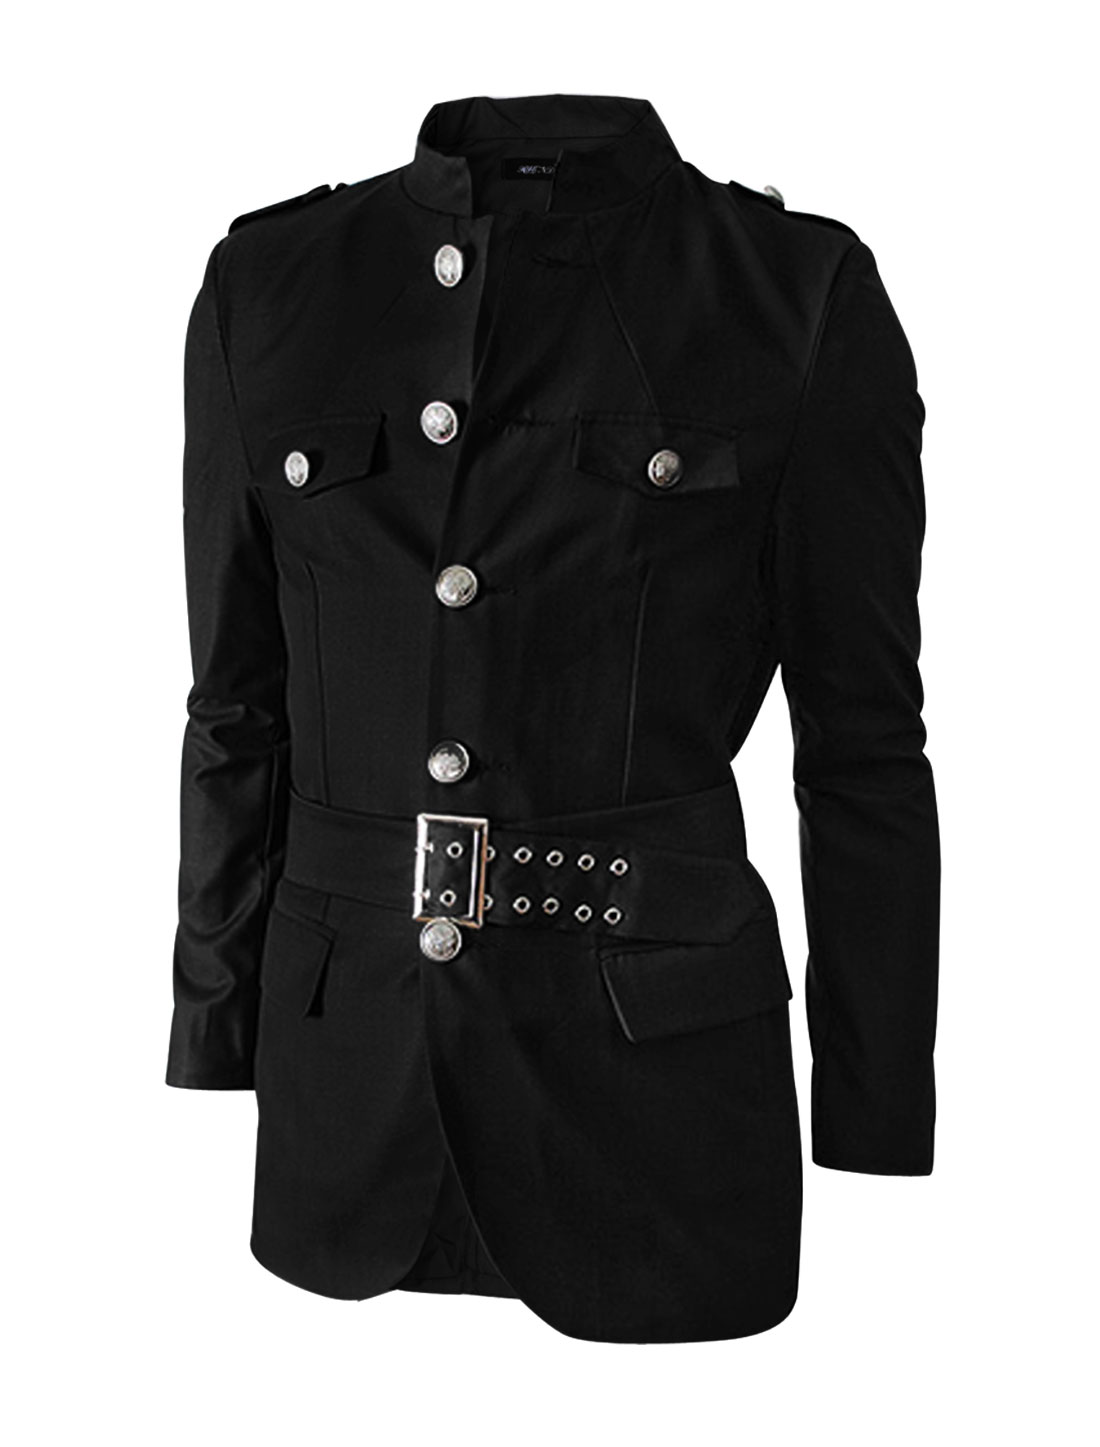 Men Stand Collar Self Tie Waist Belt Slim Military Jacket Black M